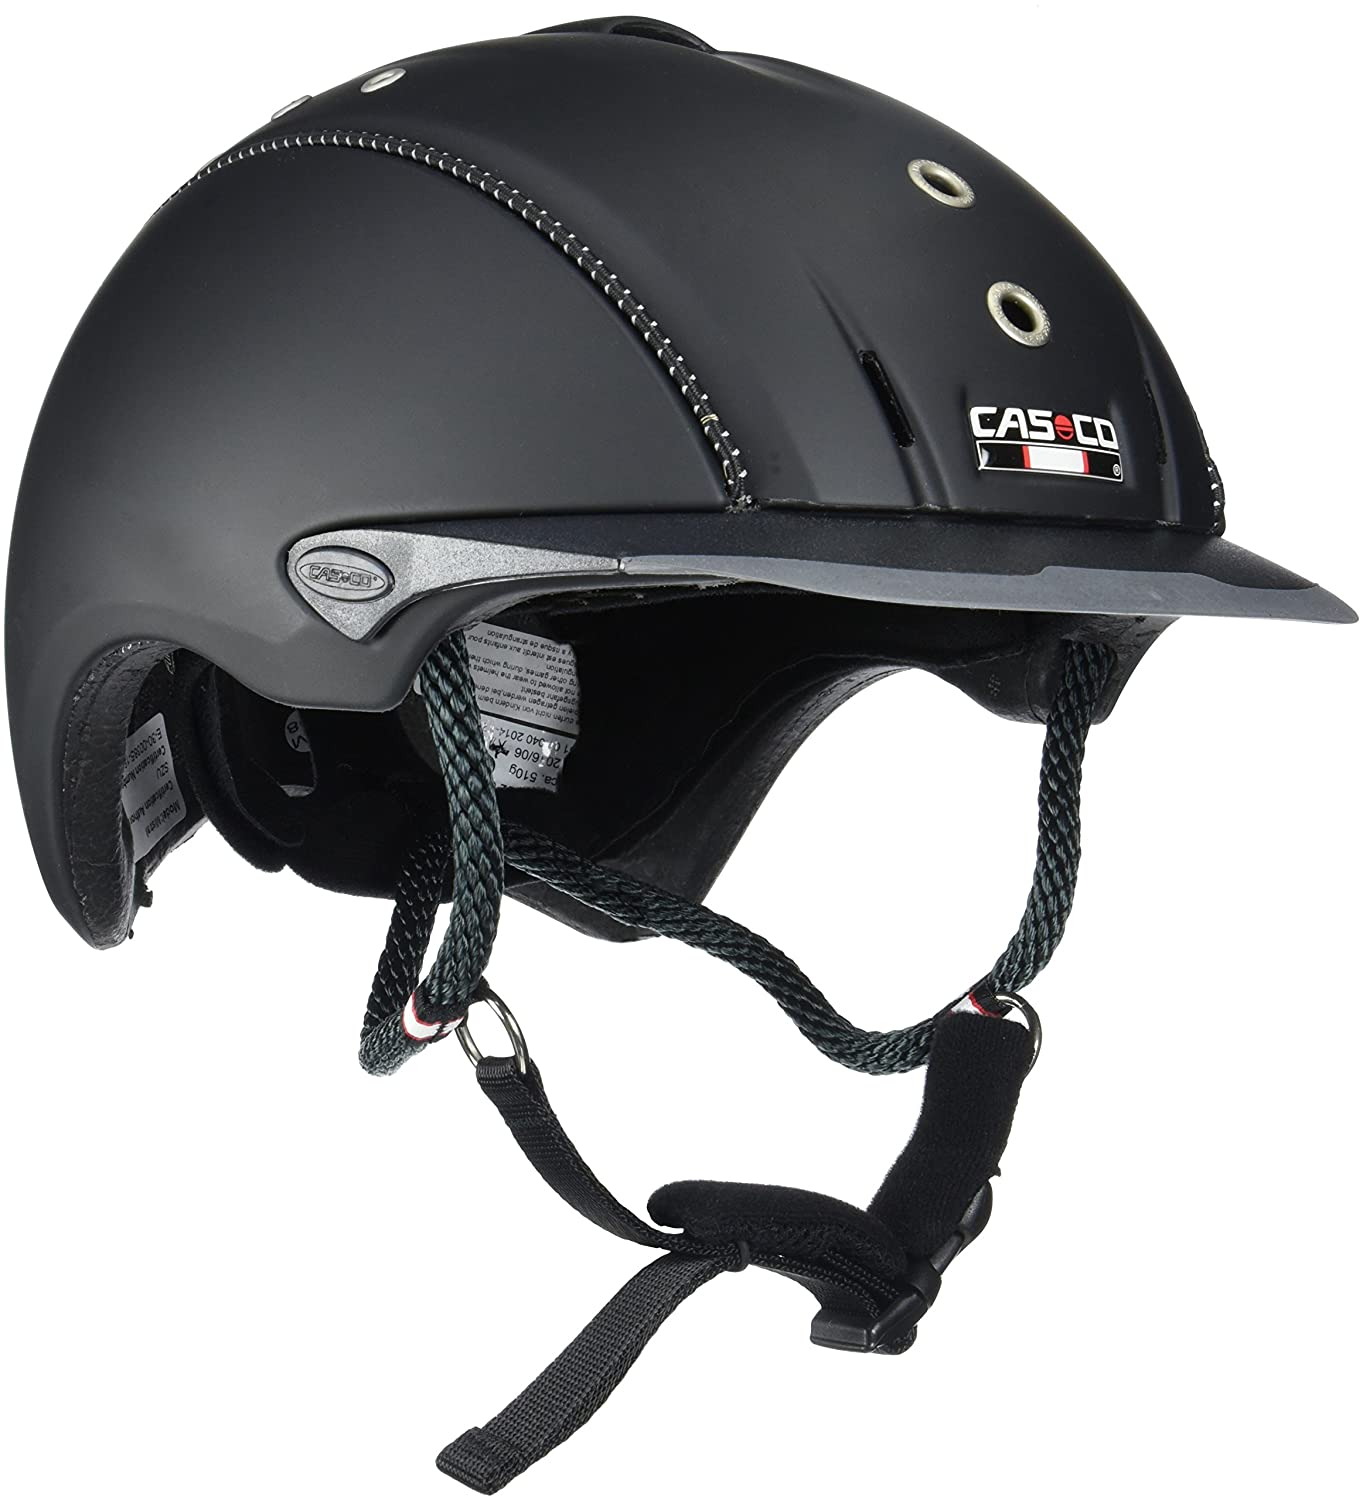 casco riding helmet MISTRALL 17.06.4003.L